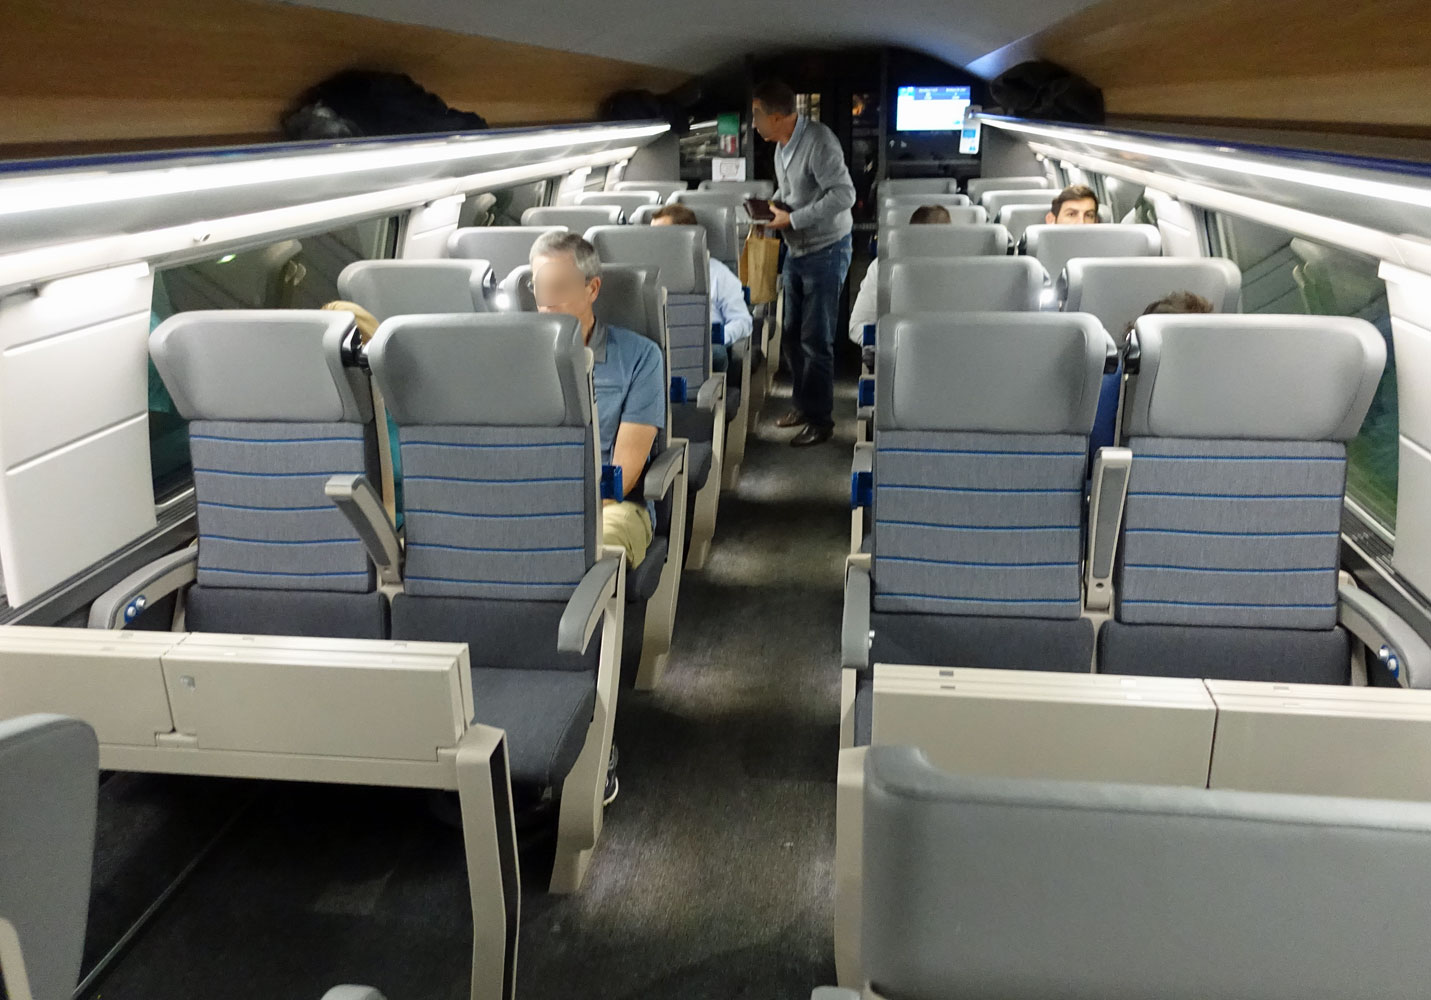 Surprising Tgv From 20 Frances Tgv High Speed Train Including Machost Co Dining Chair Design Ideas Machostcouk